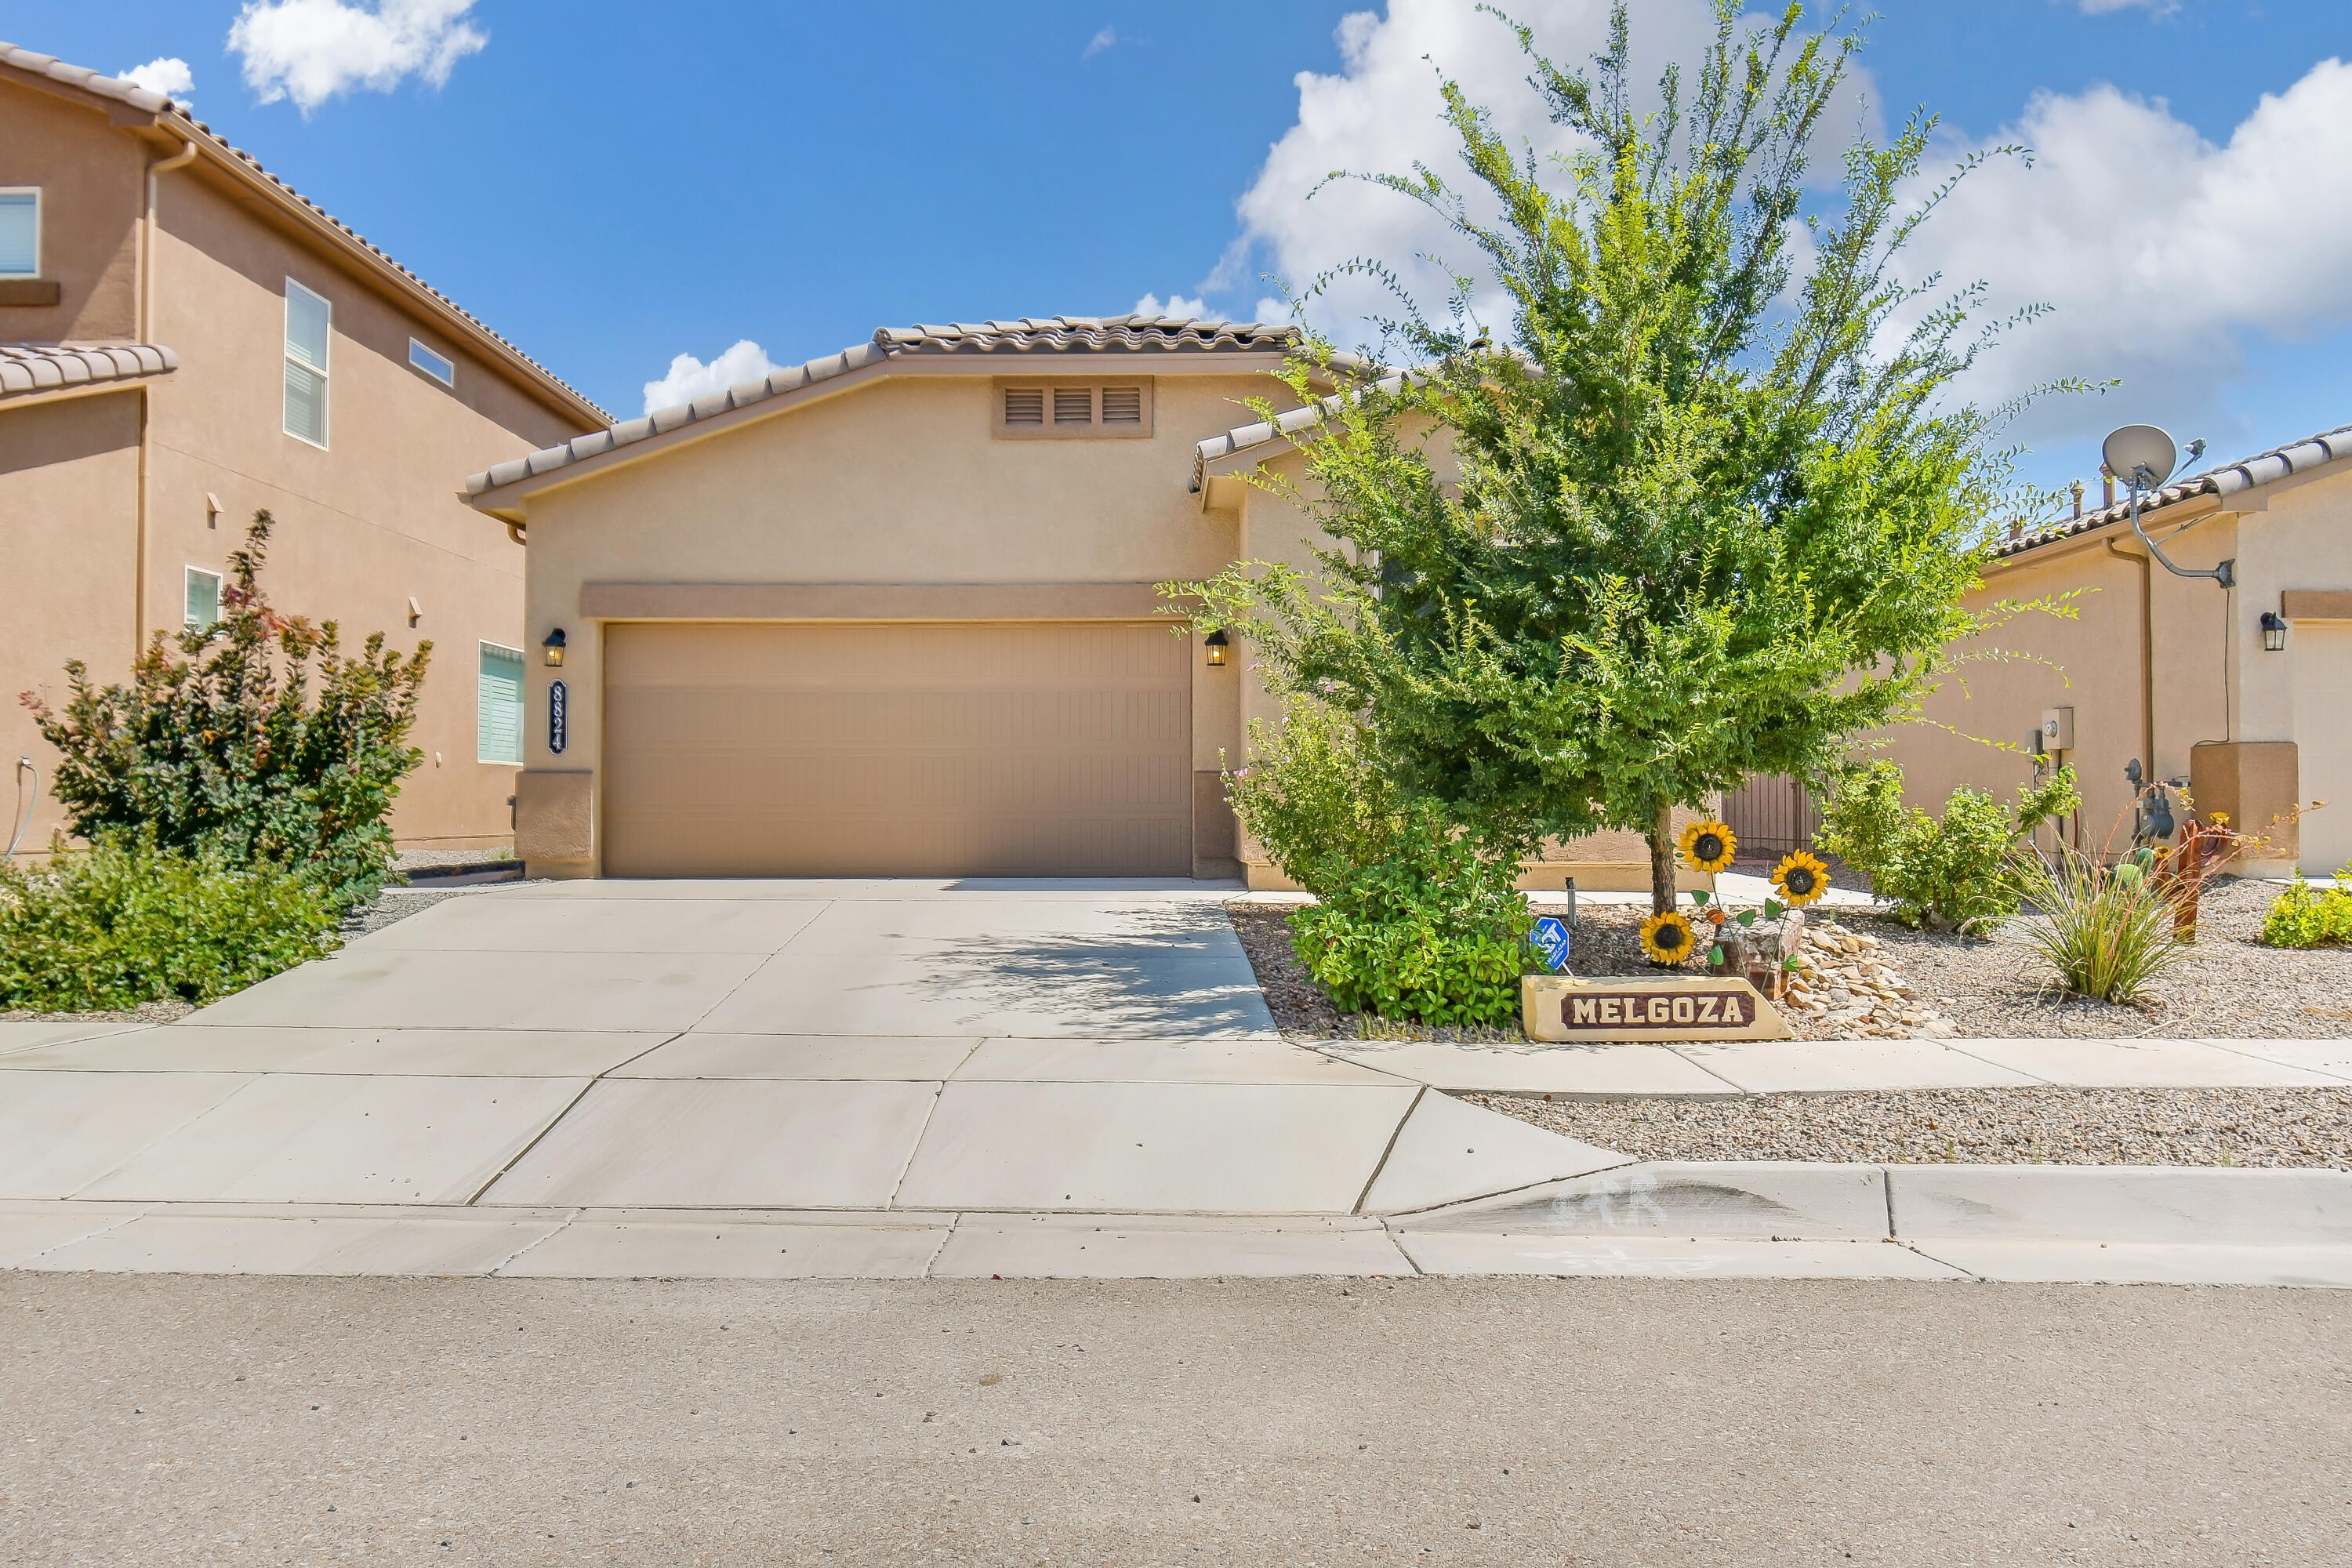 Welcome to this beautiful 3 year old DR Horton home.  This home features a modern kitchen with granite counters, tiled backsplash and stainless steel appliances.  Master suite is spacious and has a very nice master bathroom and walk-in closet.  3 nice size bedrooms plus an office for those who work from home.  You'll want to spend time in the backyard with amazing views of the Sandias.  Come see this move in ready home today, great schools close by too.